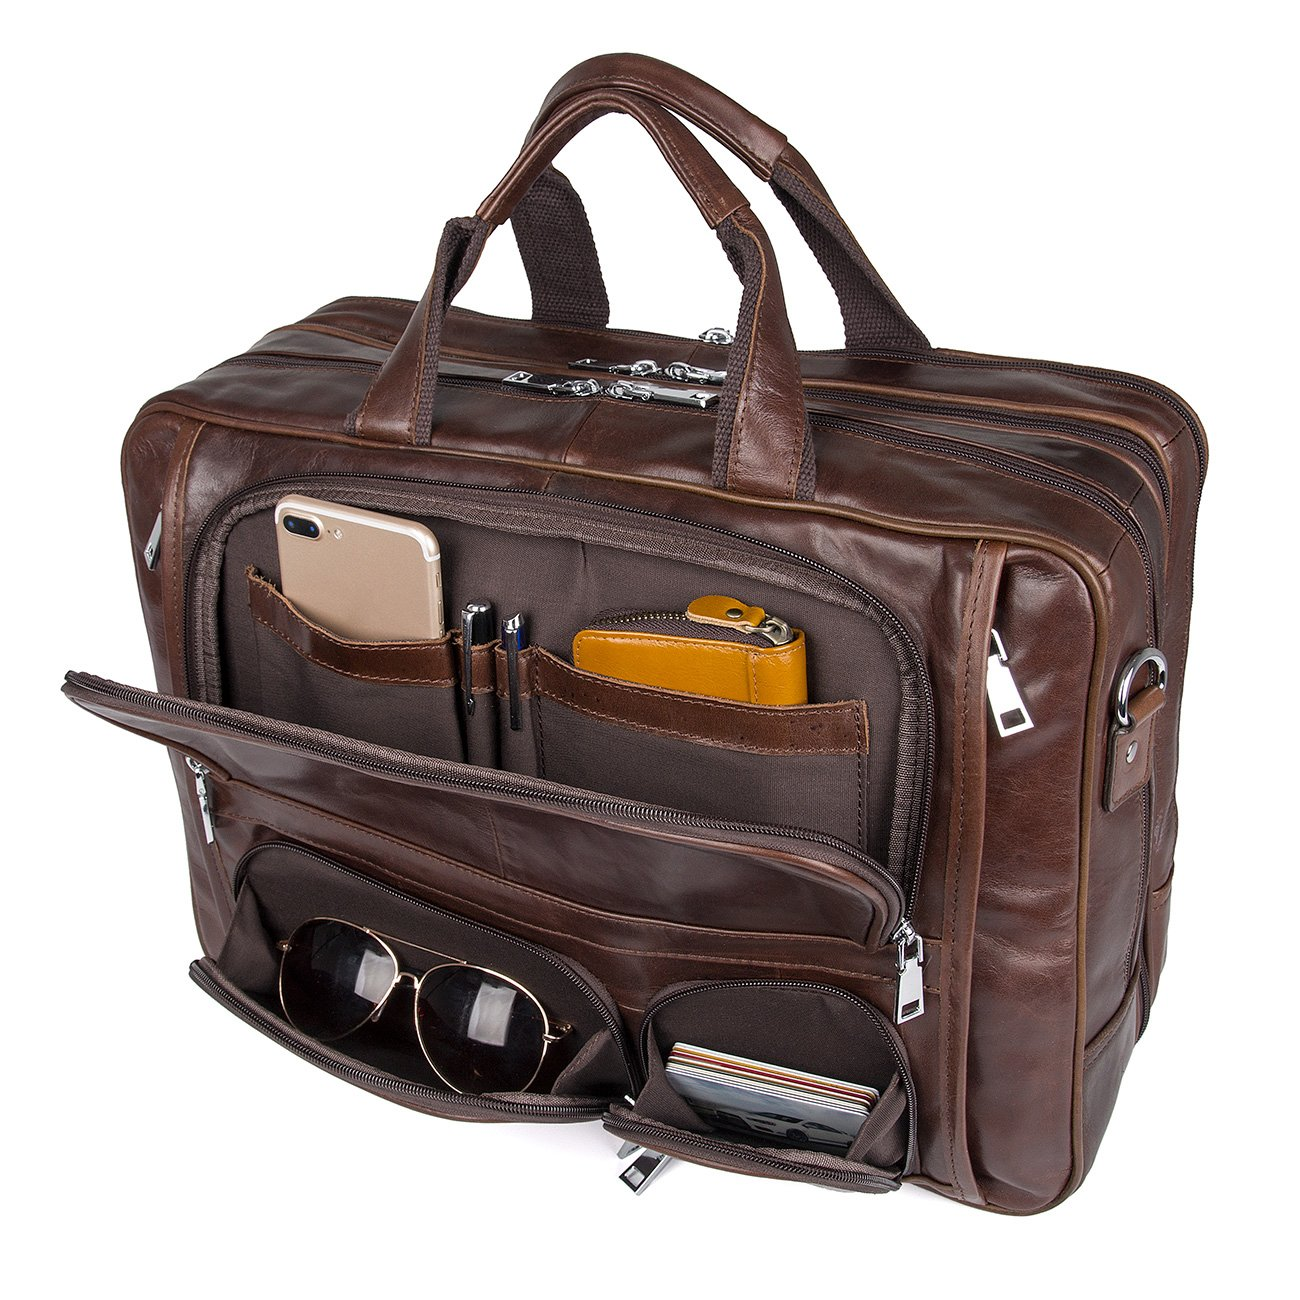 Image of Augus Business Travel Briefcase Genuine Leather Duffel Bags for Men Laptop Bag fits 15.6 inches Laptop Luggage